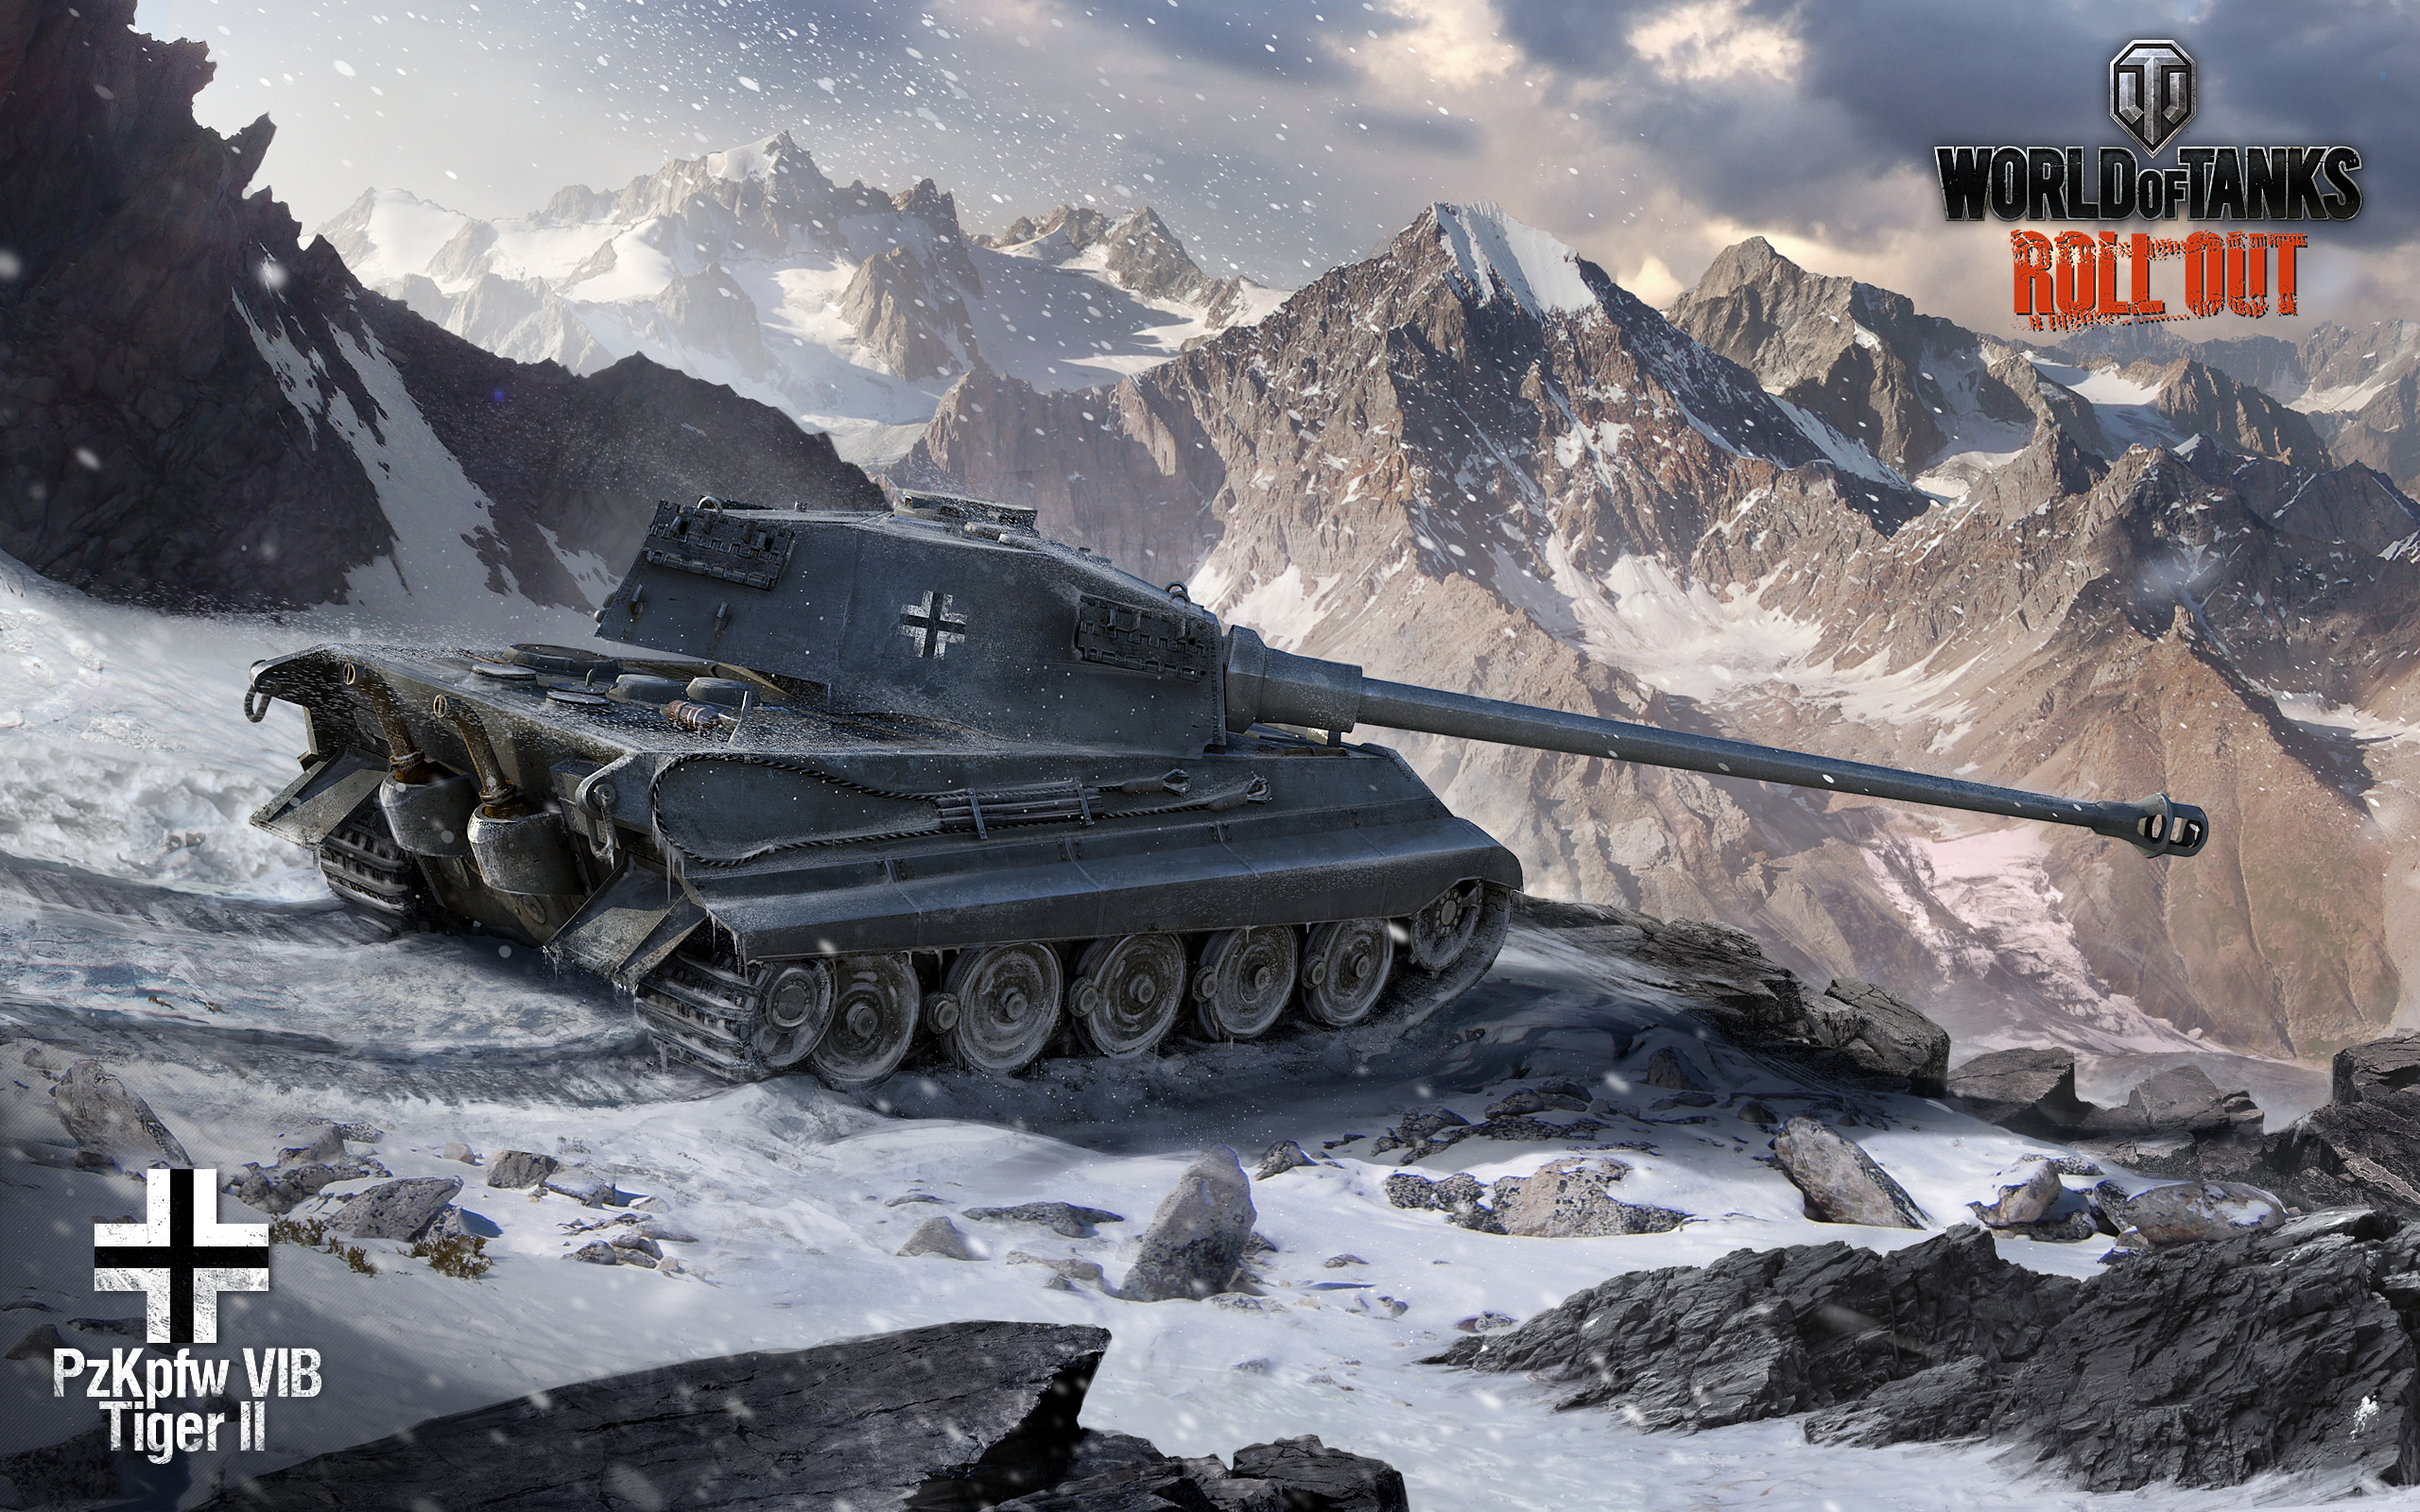 December Wallpaper | General News | World of Tanks